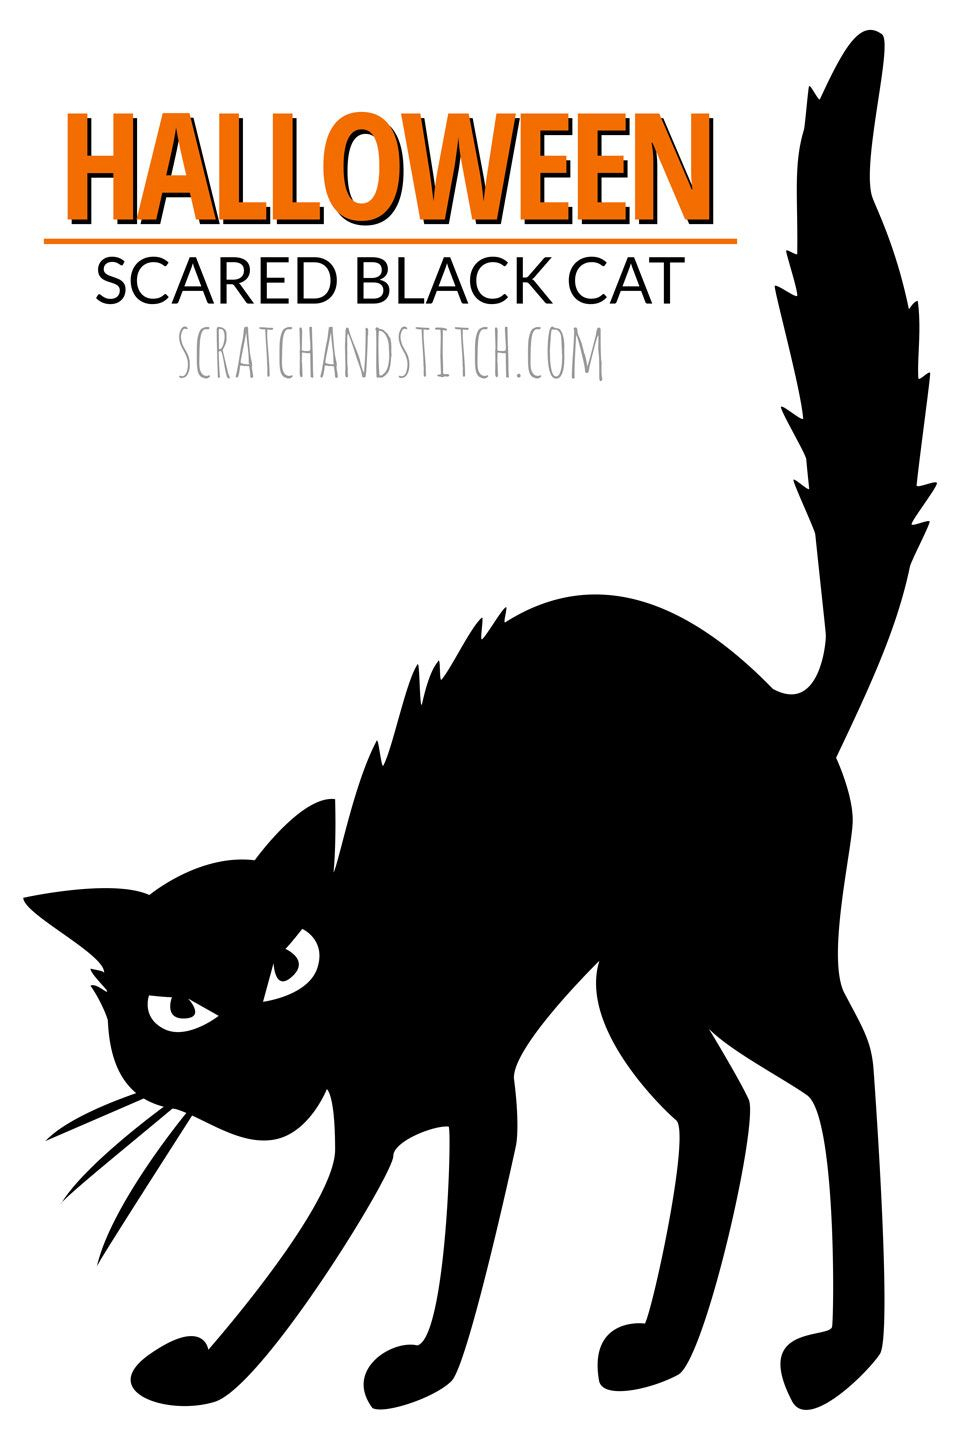 8 Easy Halloween Decor Ideas | Halloween Crafts & Decor | Pinterest - Free Printable Pin The Tail On The Cat